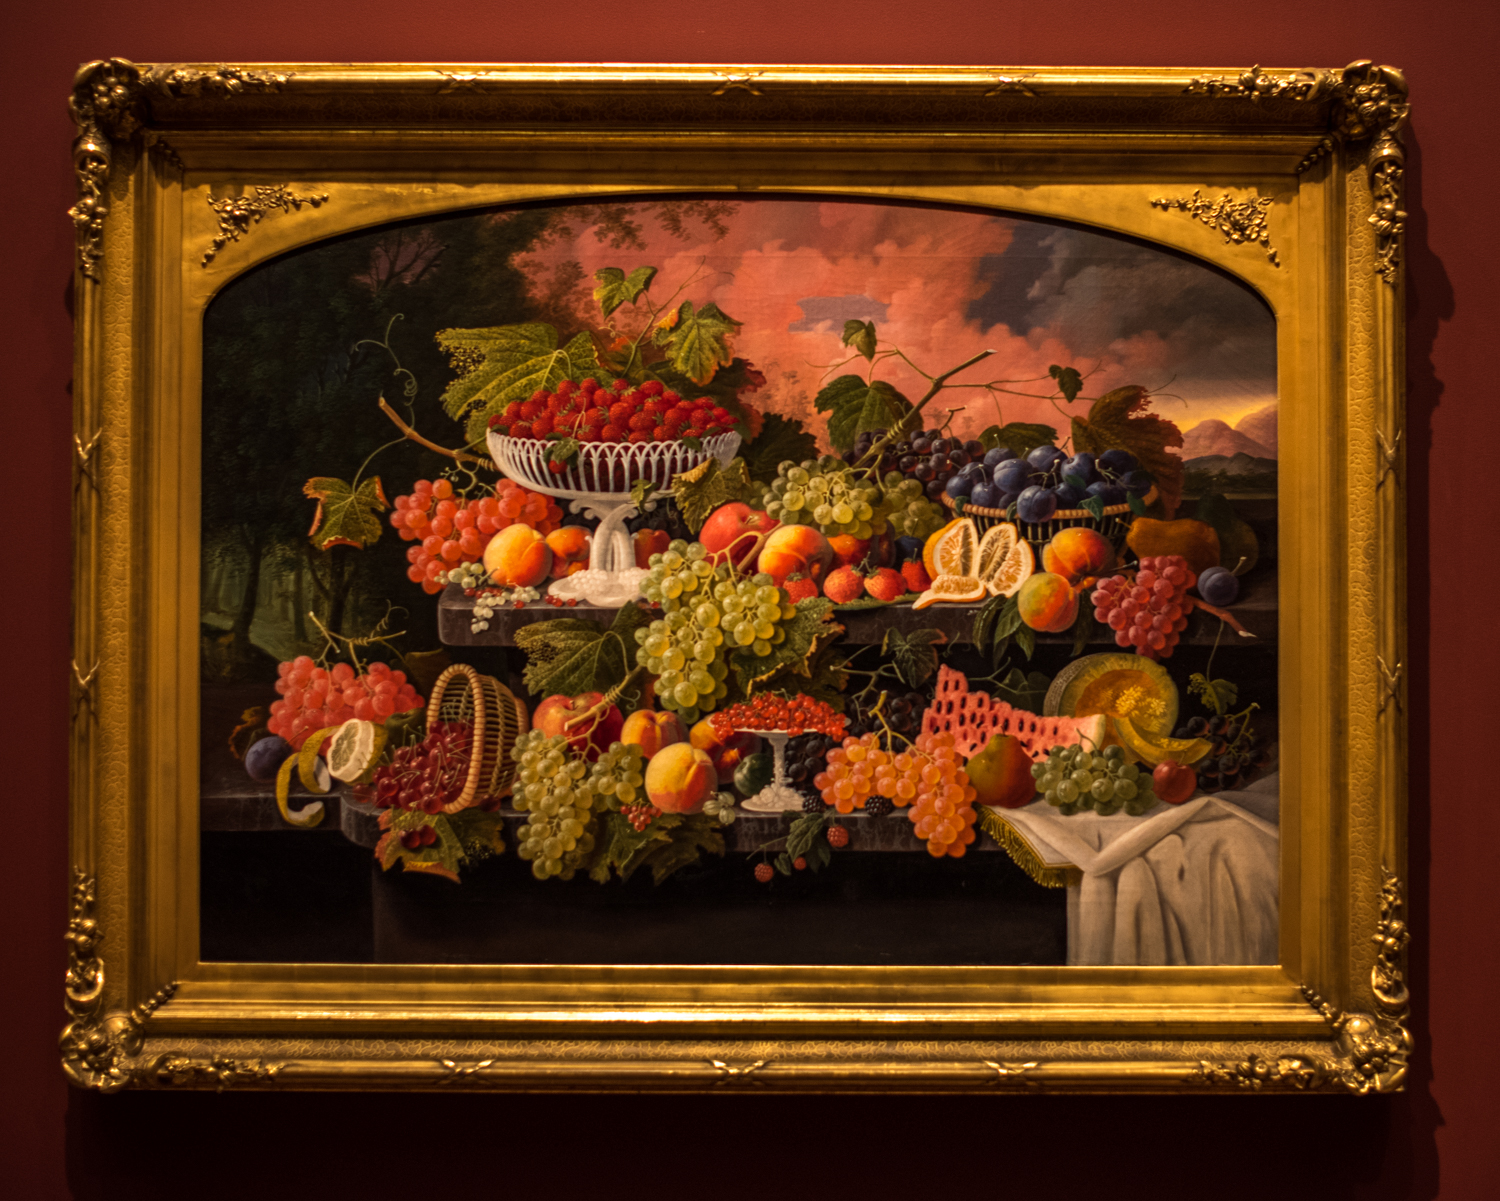 """Two-Tiered Still Life with Fruit and Sunset Landscape 1867 , Severin Roesen (1815-1872), oil on canvas. From the information tag: """"Severin Roesen's bountiful still life celebrates and reinforces the popular 19th century notion that America's natural resources distinguished the nation from the rest of the world. In majestic proportions and a vivid palette, an abundant variety of fruit sits atop a two-tiered marble shelf. The dense forest at left and the mountain landscape at right suggest the diversity and power of the American landscape. Painted around the time of the Civil War, the canvas' dramatic and somewhat threatening sky may suggest the question of whether or not America's unique democracy would prevail."""""""